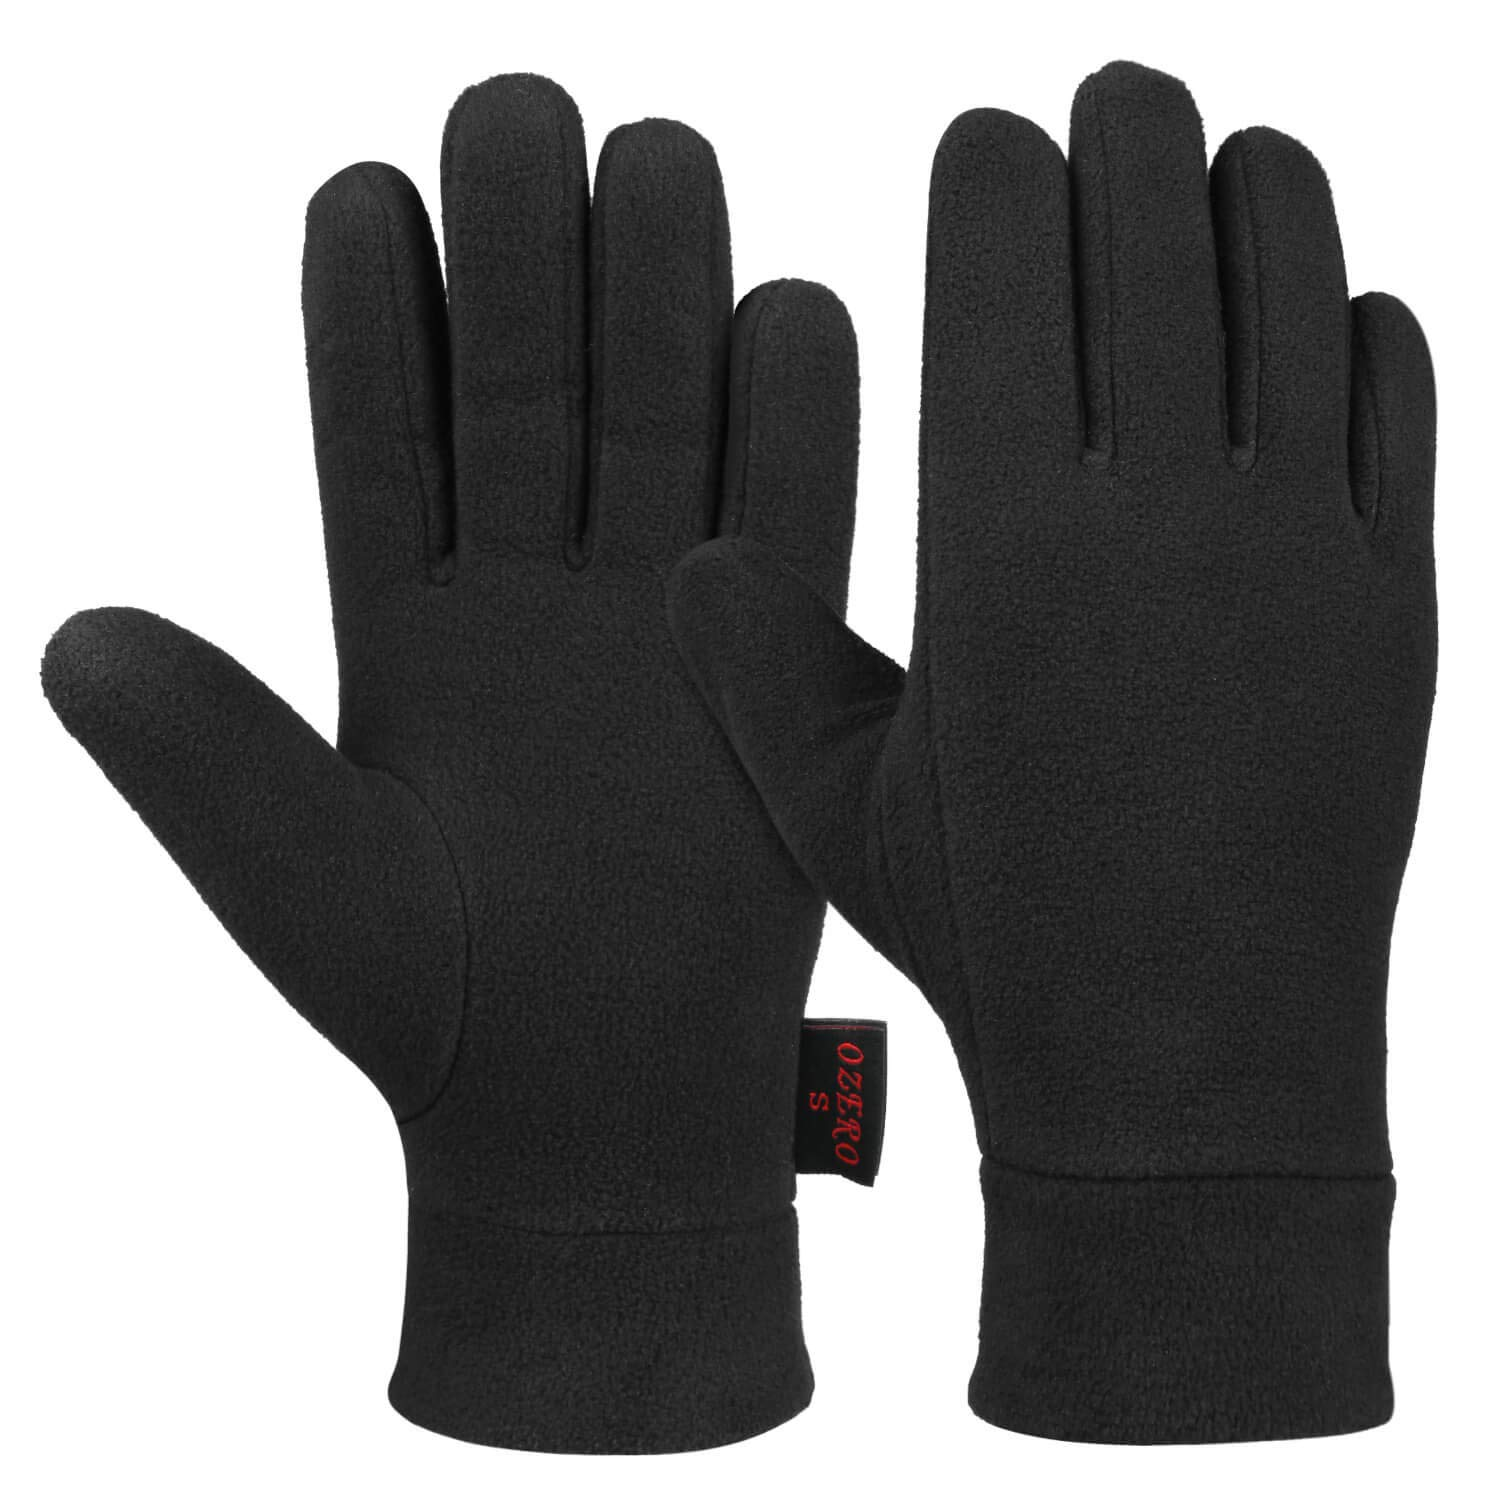 Ozero Fleece Winter Glove Liners